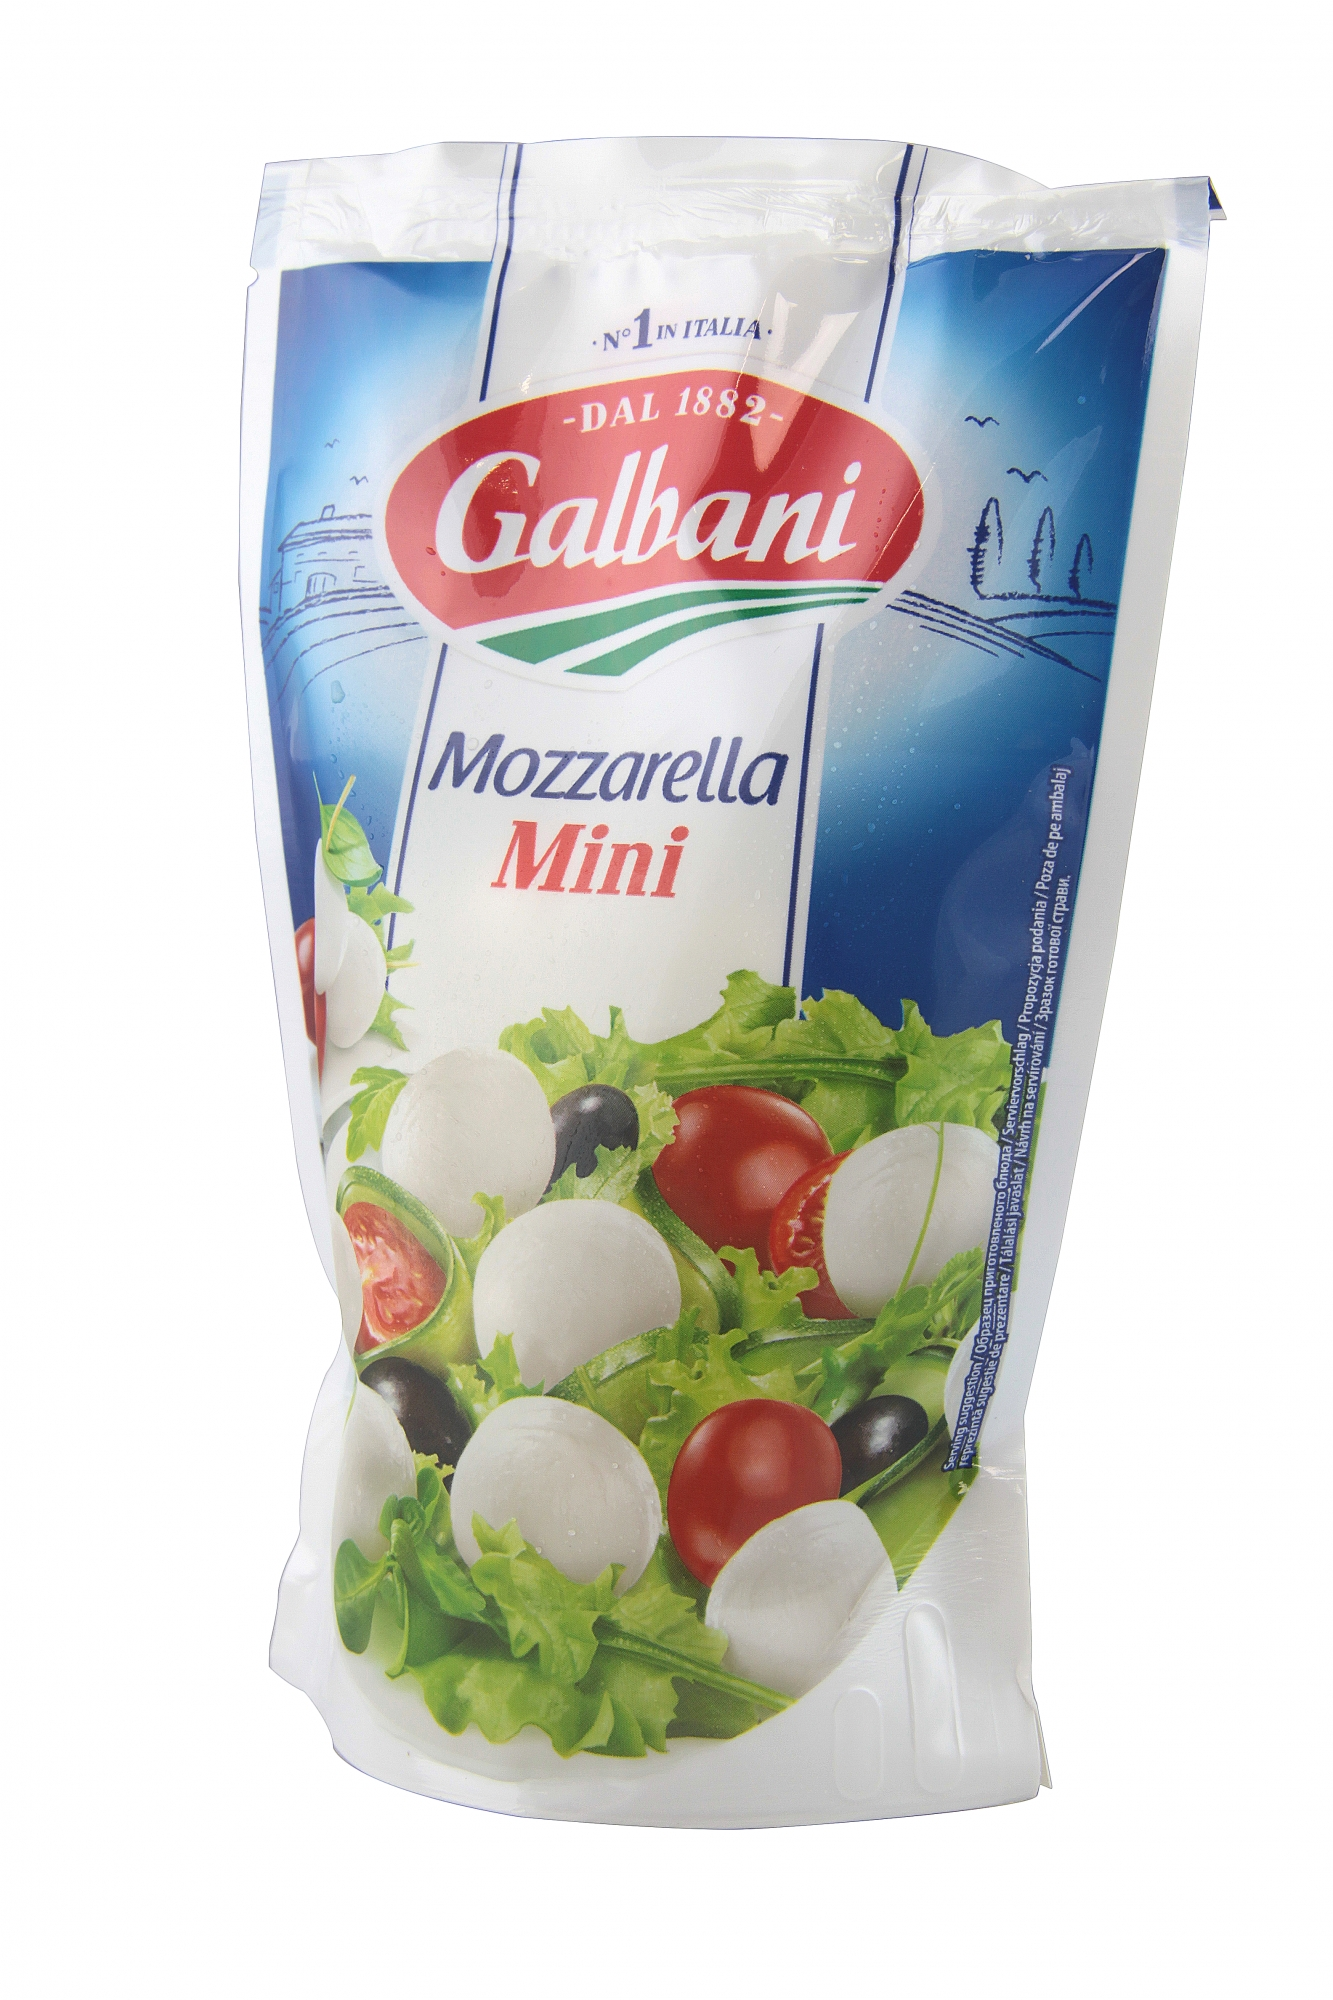 Galbani - Mozzarella Mini 150g